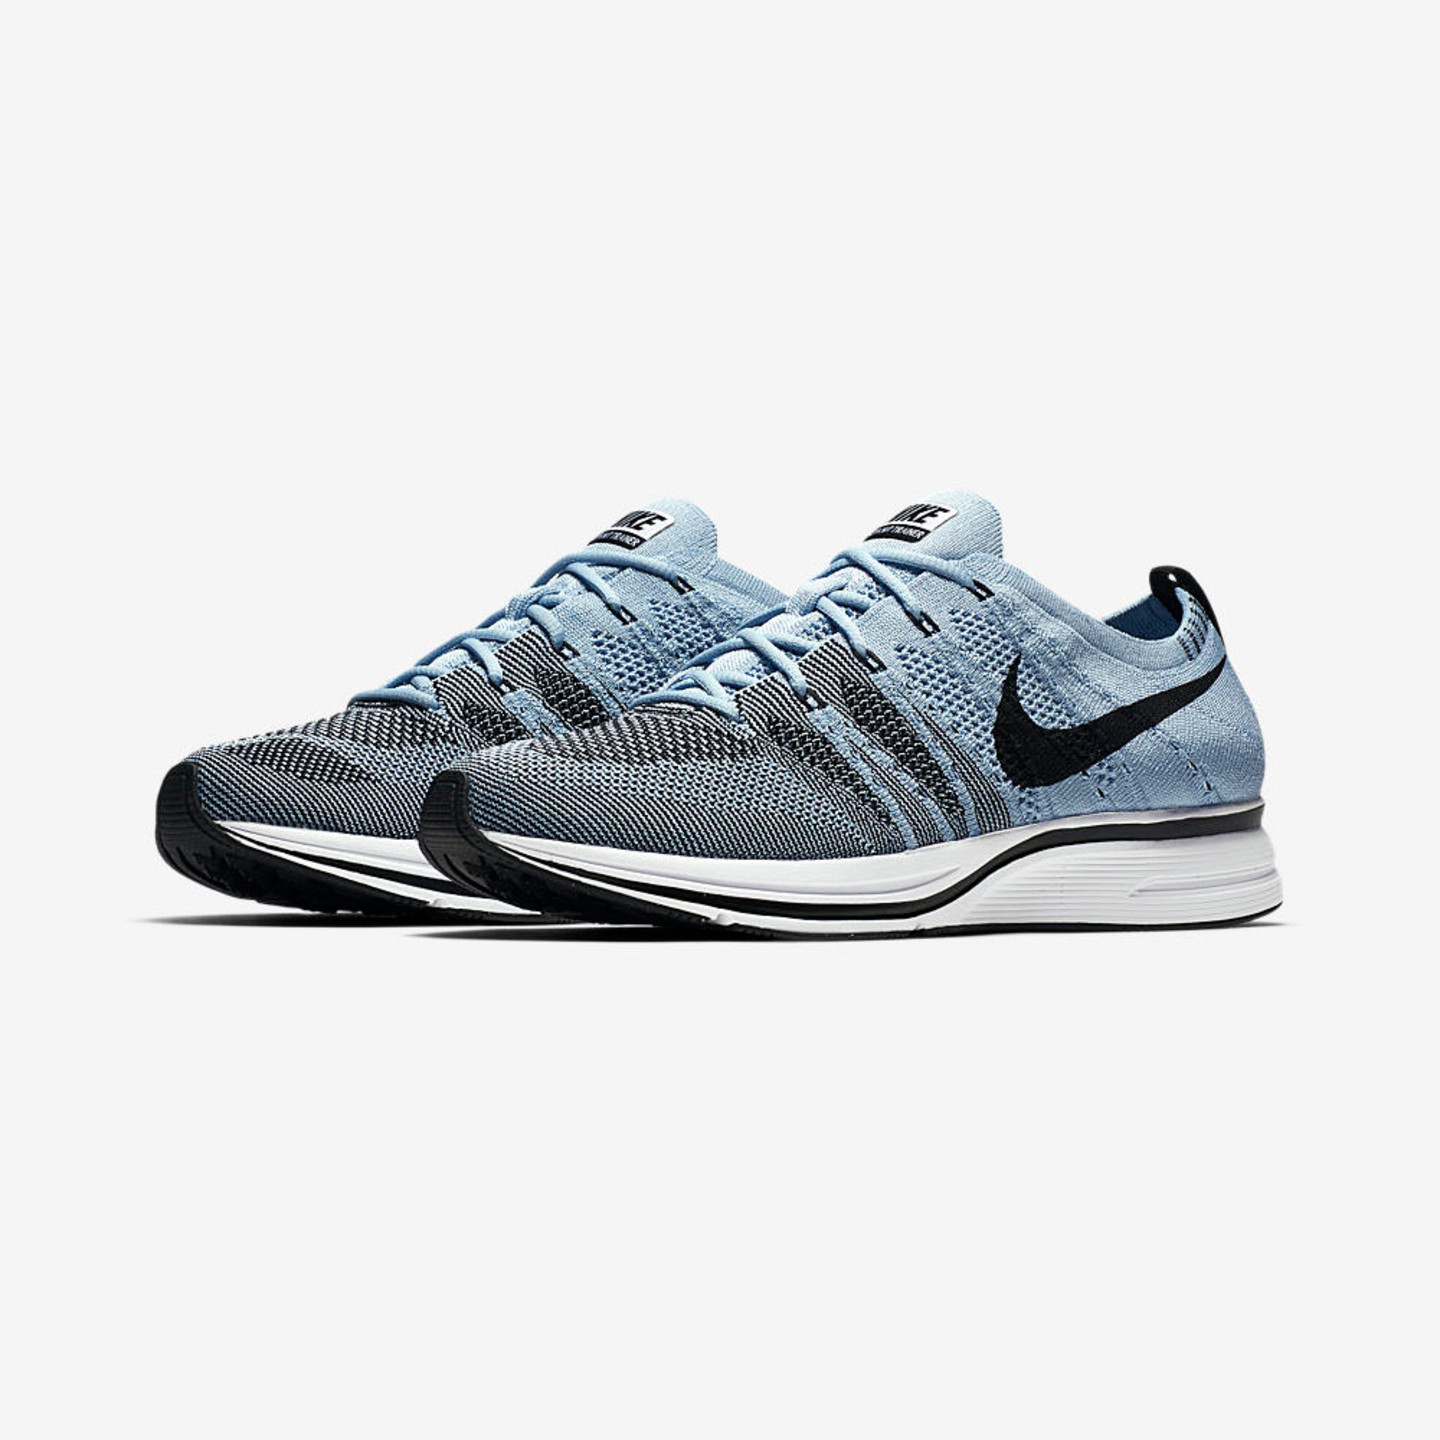 Nike Flyknit Trainer Cirrus Blue/ Black / White  AH8396-400